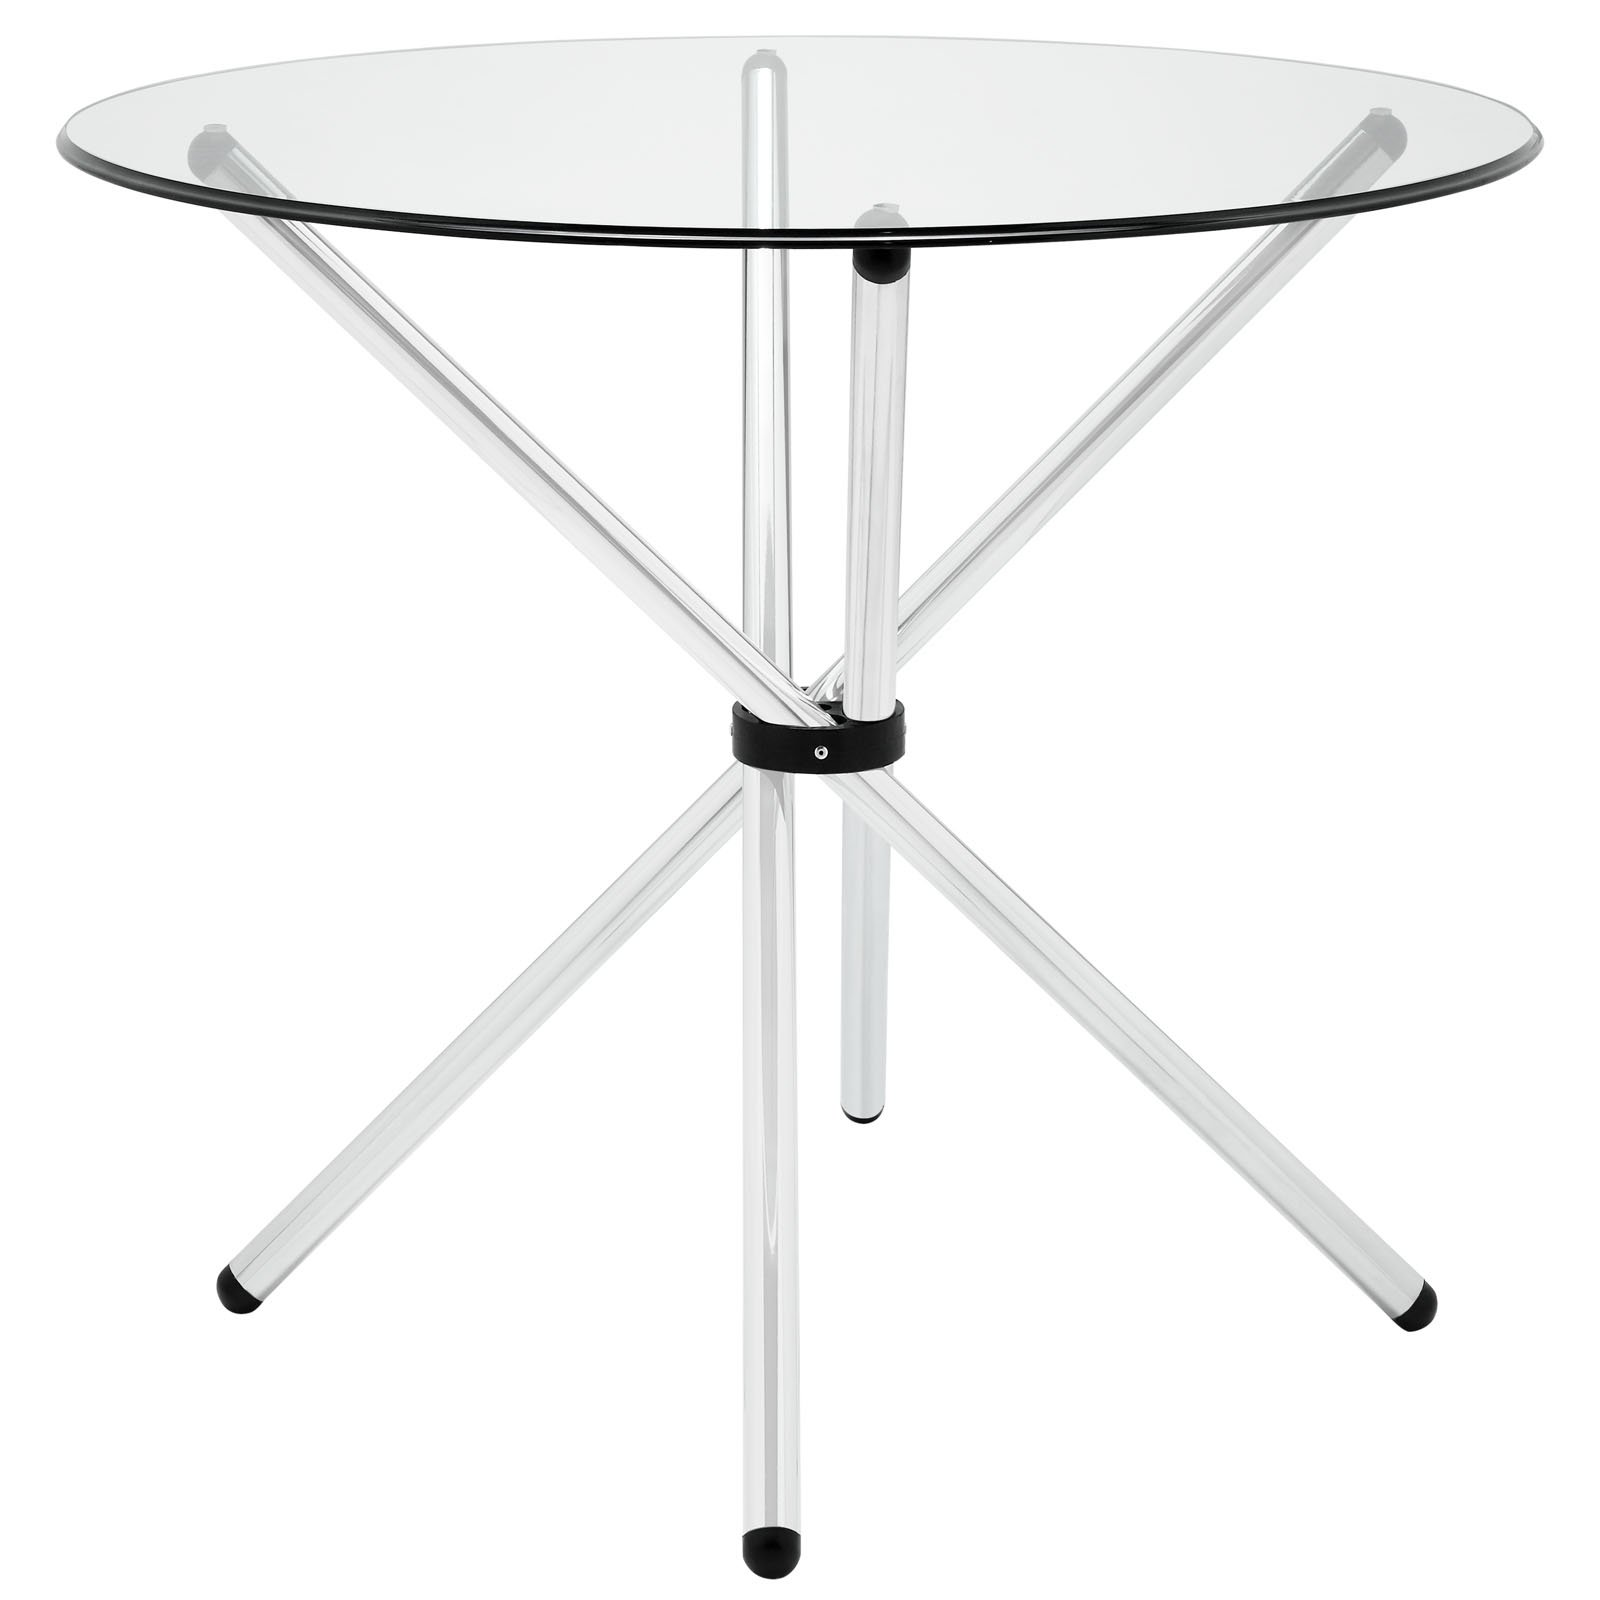 Modway Baton 36'' Modern Kitchen and Dining Table with Round Glass Top and Stainless Steel Base by Modway